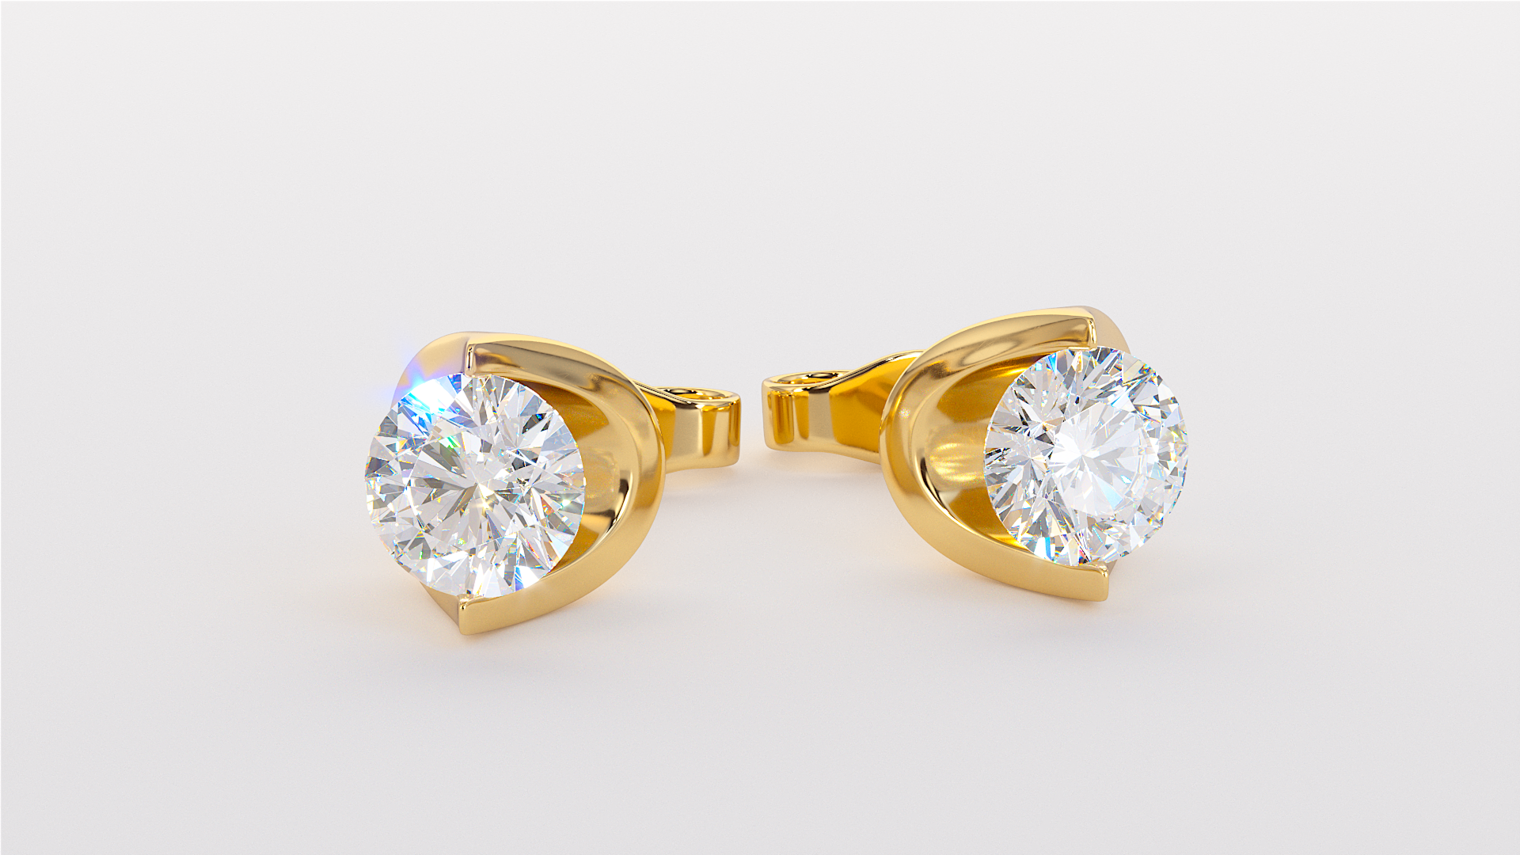 Yellow Gold, Round Diamonds, Earrings, Stud